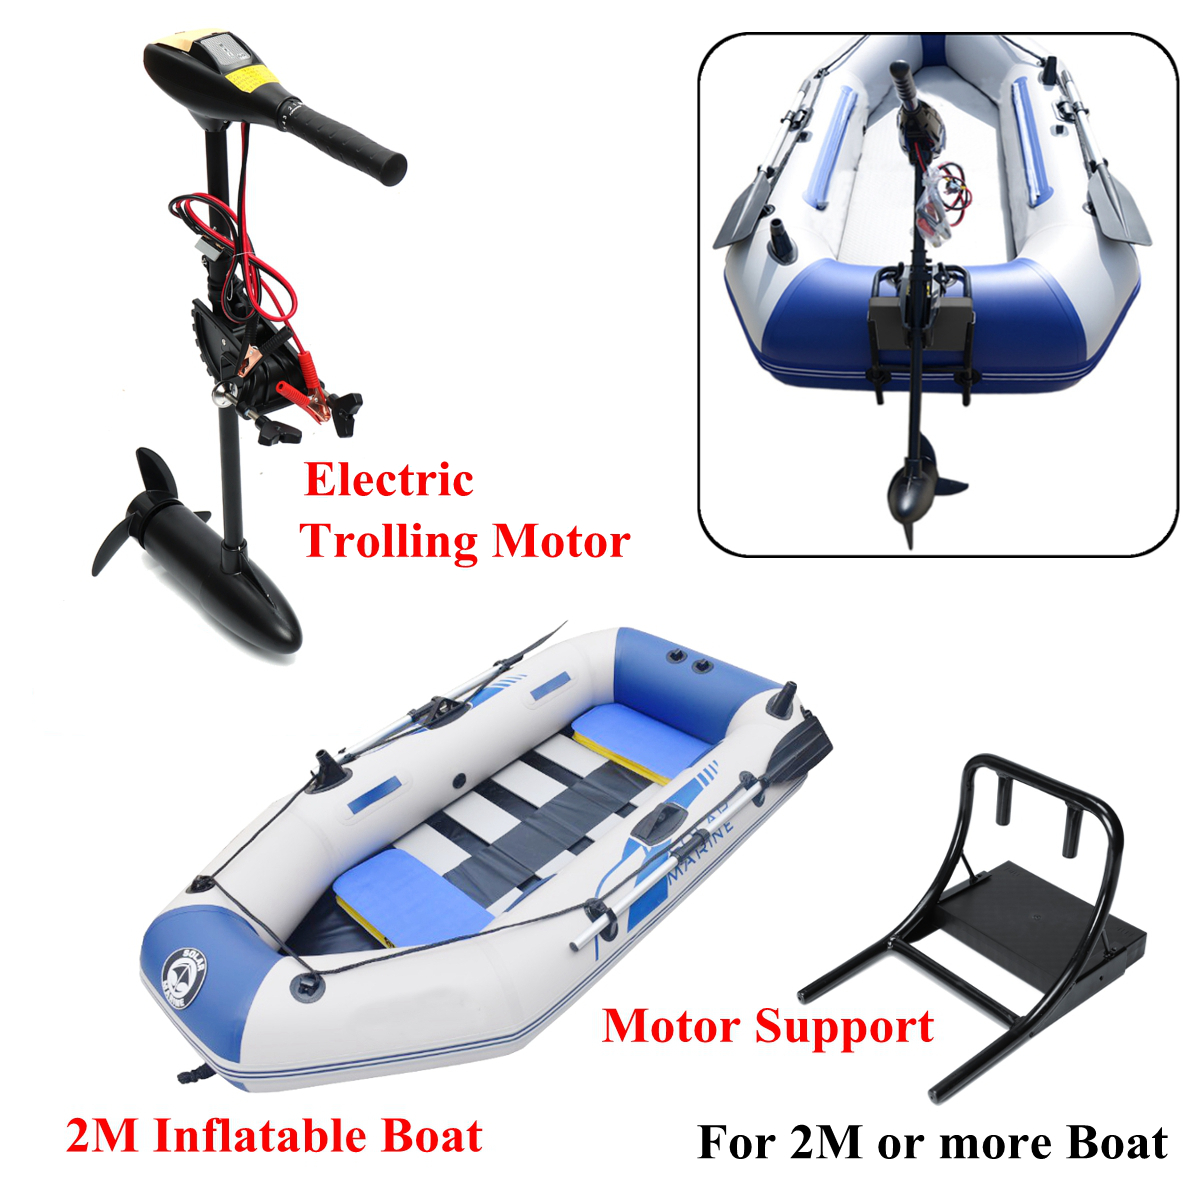 DC 12V 18/28/40/48/60/88LBS Electric Trolling Motor Inflatable Boat Outboard Engine+1.7/2m Inflatable Boat and Motor support electric outboard engine fishing boat propeller with outboard engine 12v 684w1750 rotationl speed dc motor